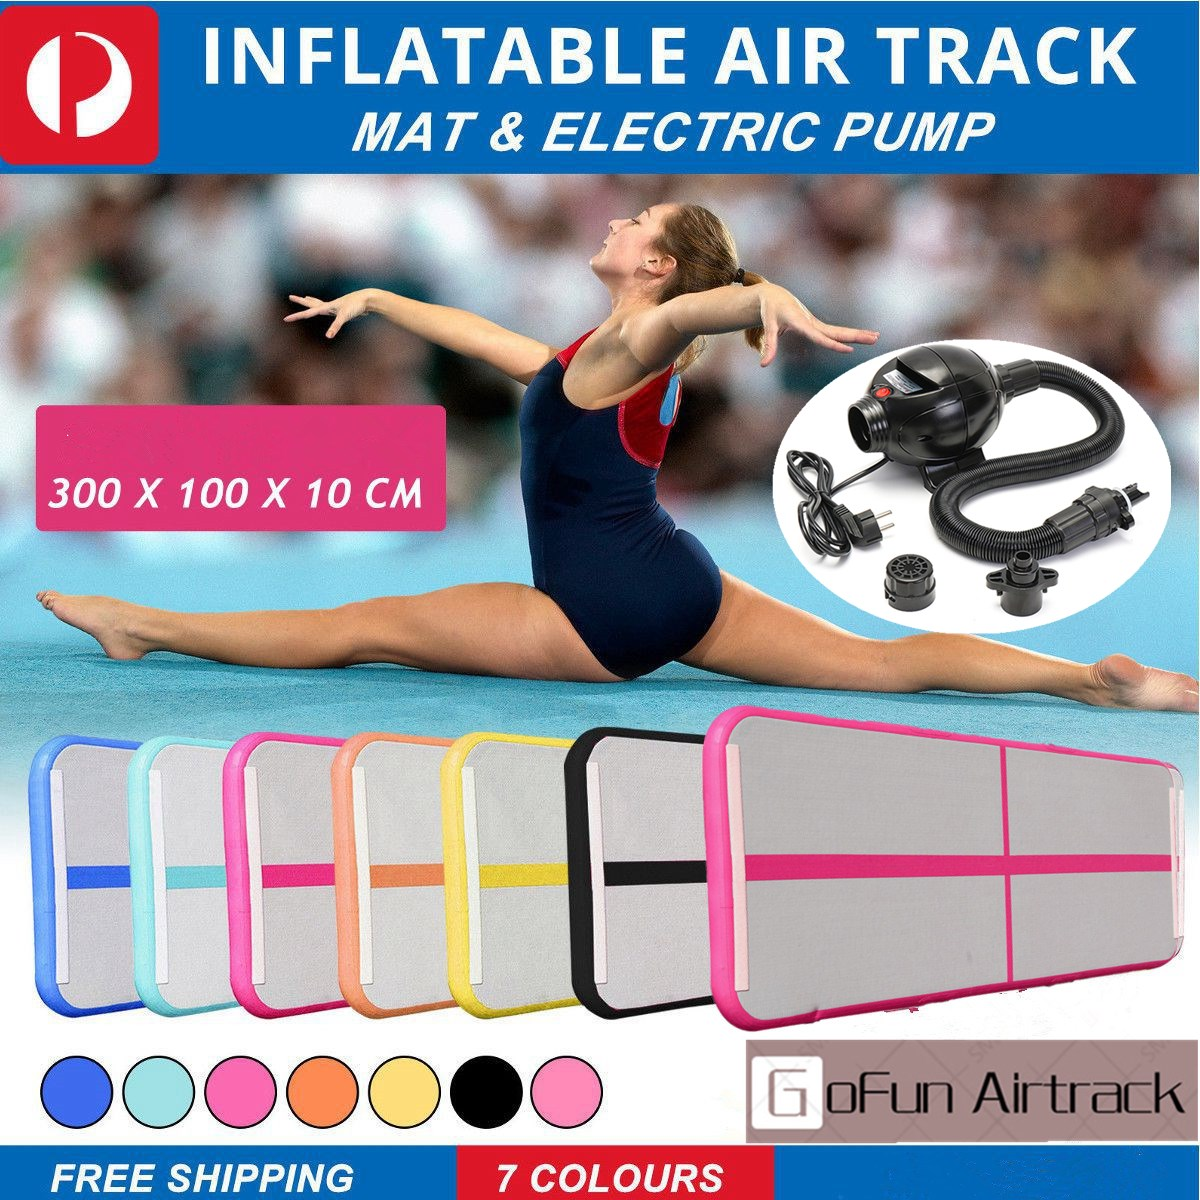 Inflatable Gymnastics AirTrack Tumbling Air Track Floor Trampoline Electric Air Pump for Home Use/Training/Cheerleading/Beach цена